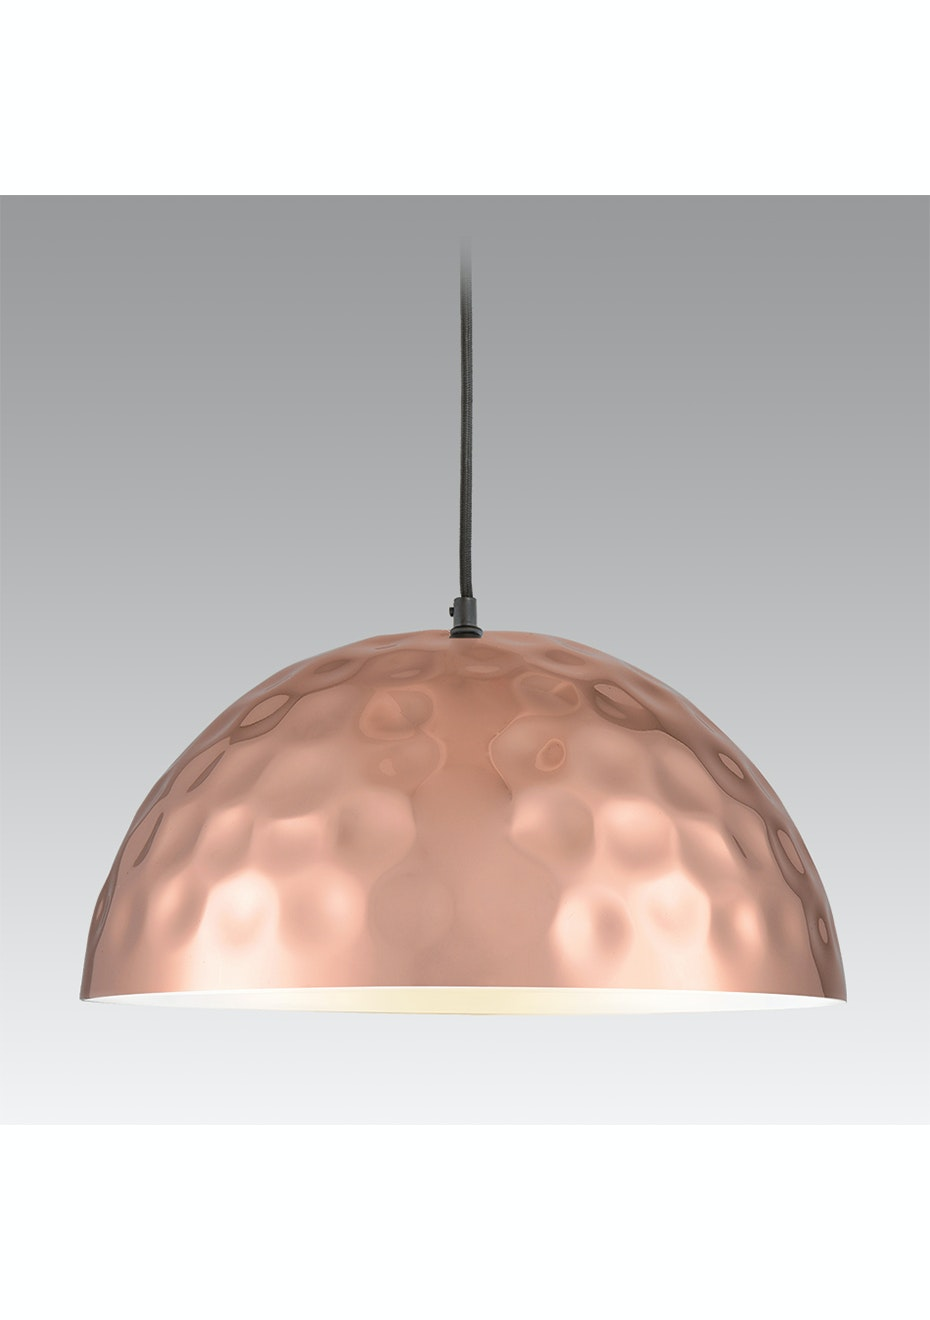 Noozi Copper Beaten Series Pendant Light Dome 400 Noozi Designer Living Lighting Cushions Throws Onceit